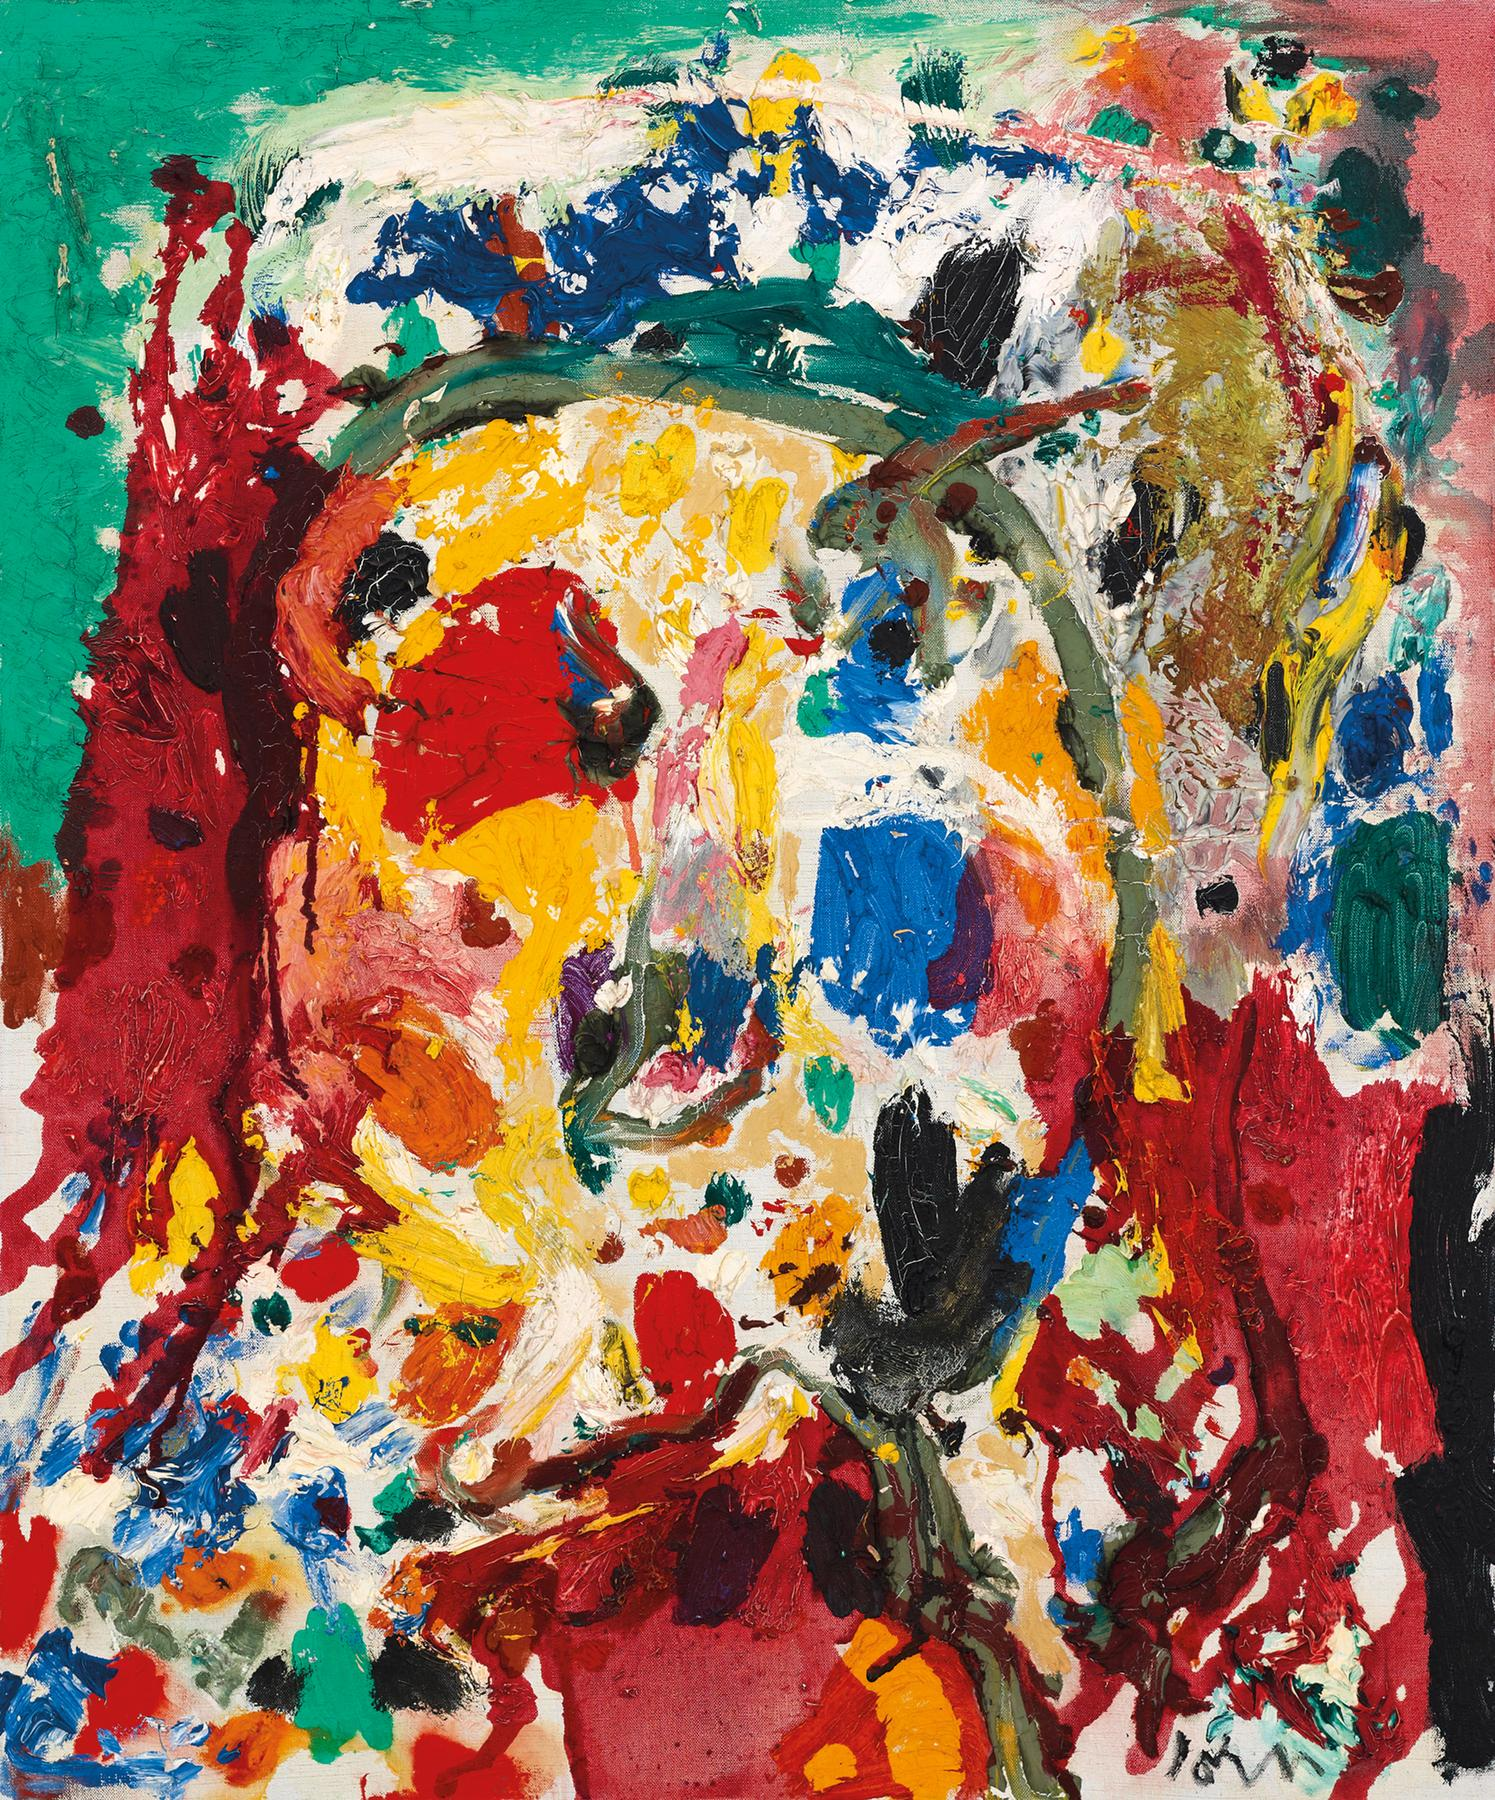 Asger Jorn, Rodt Lys (Red Light), 1960, oil on canvas, 25.6 x 21.3 inches (court